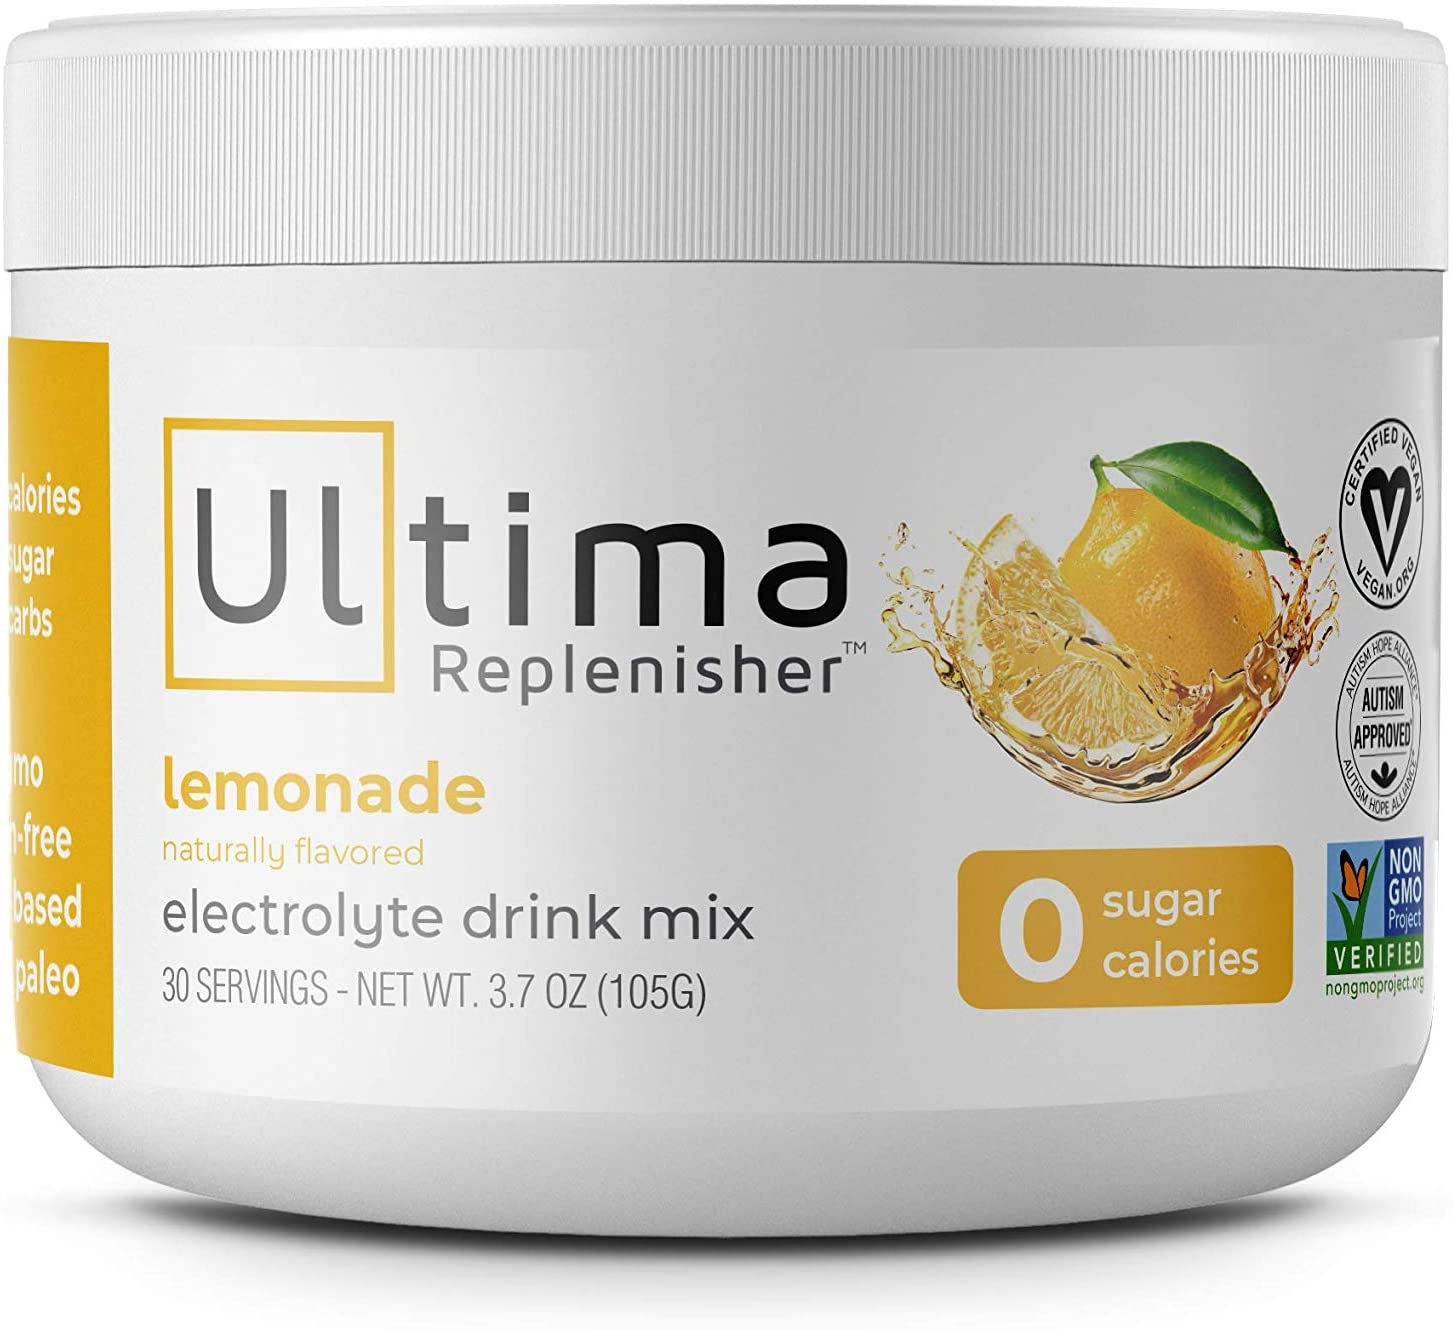 Ultima Replenisher Electrolyte Hydration Powder, Lemonade, 30 Serving Canister - Sugar Free, 0 Calories, 0 Carbs - Gluten-Free, Keto, Non-GMO with Magnesium, Potassium, Calcium